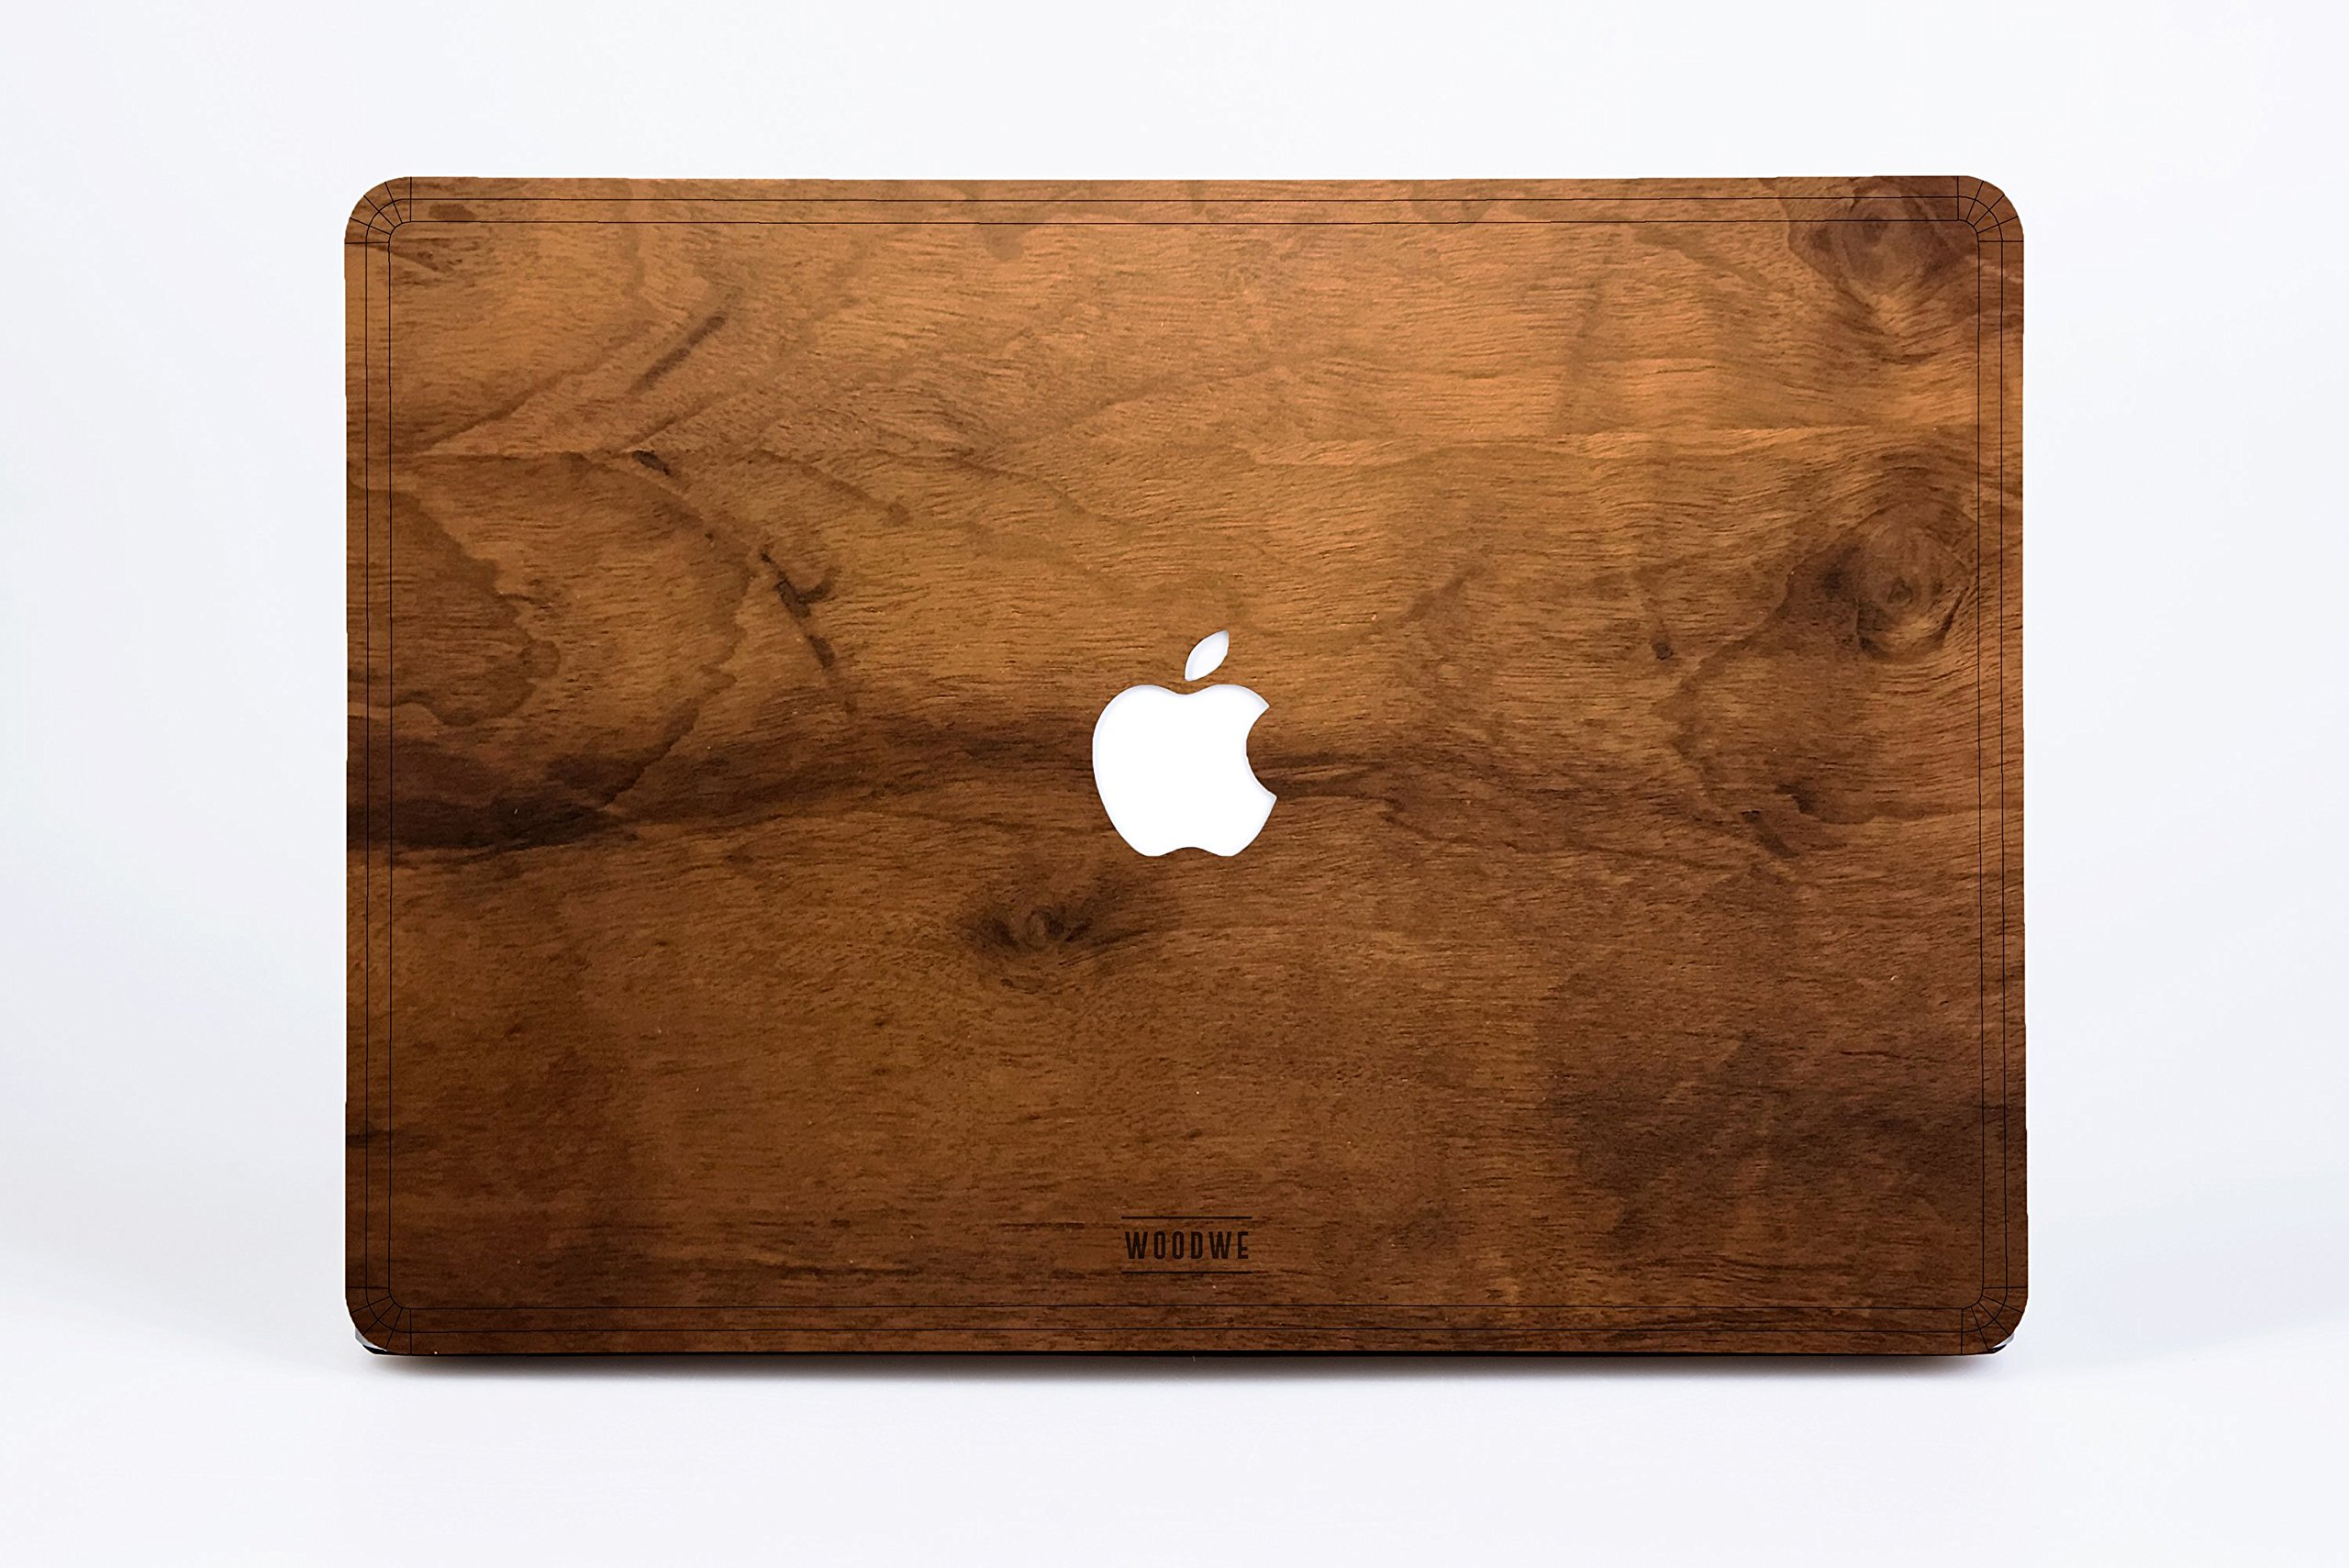 WOODWE Real Wood MacBook Case Cover Skin Sticker Decal for Mac pro 15 inch Retina Display | Model: A1398; Mid 2012 – Mid 2015 | Genuine & Natural IMBUIA Wood | TOP&Bottom Cover by WOODWE (Image #9)